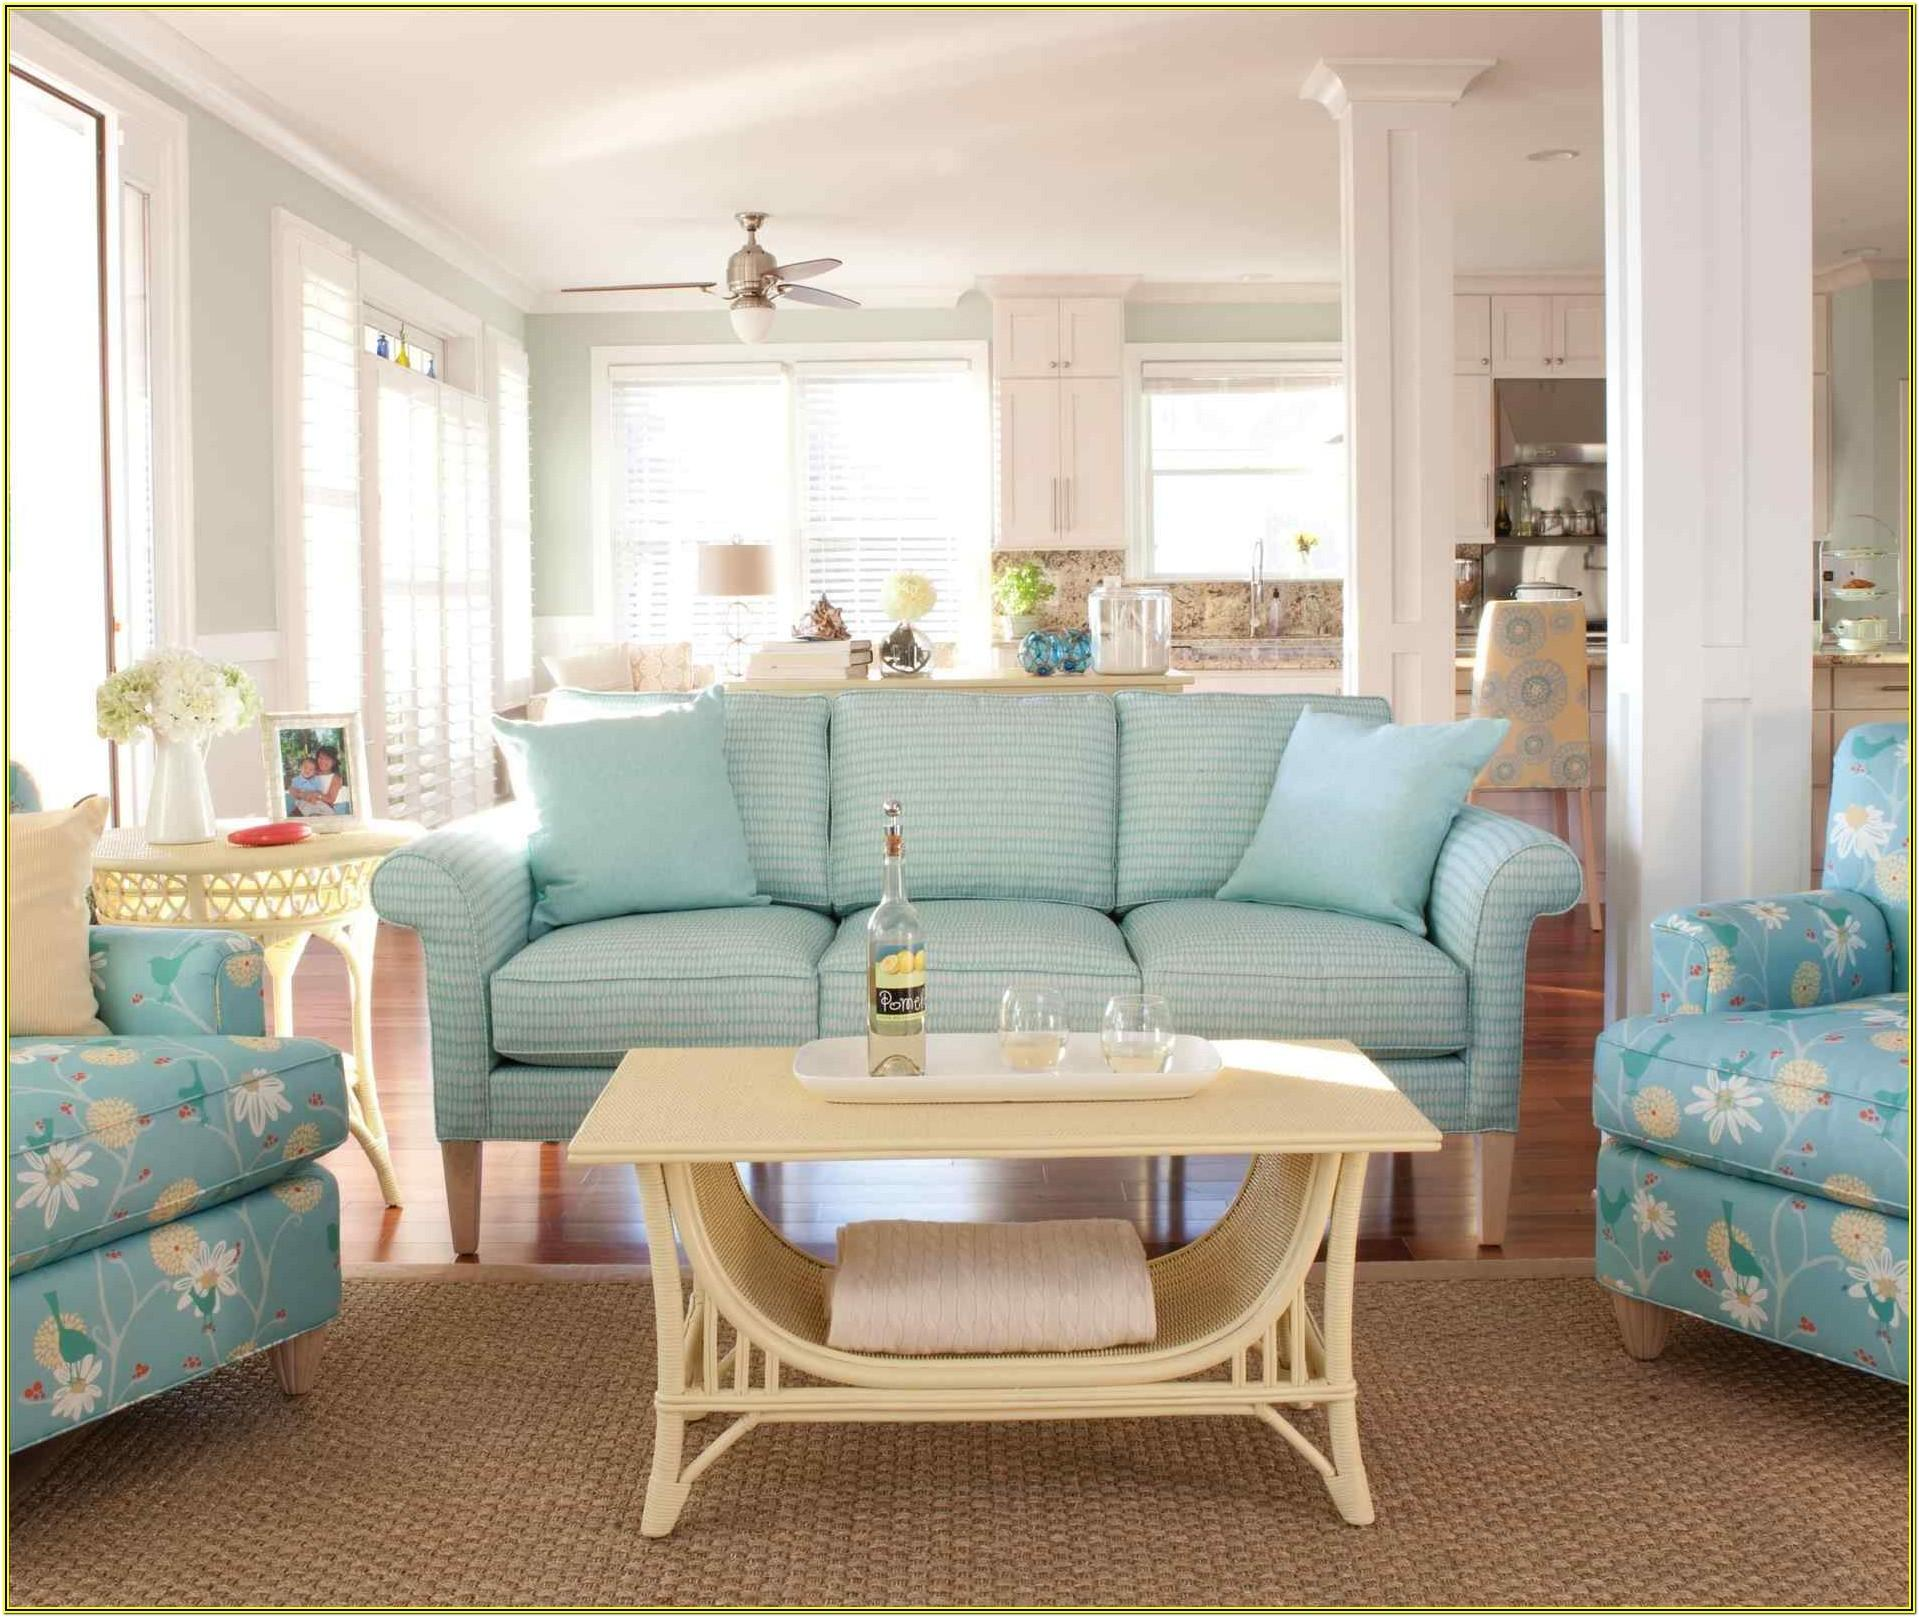 Beach Theme Living Room With Brown Couch